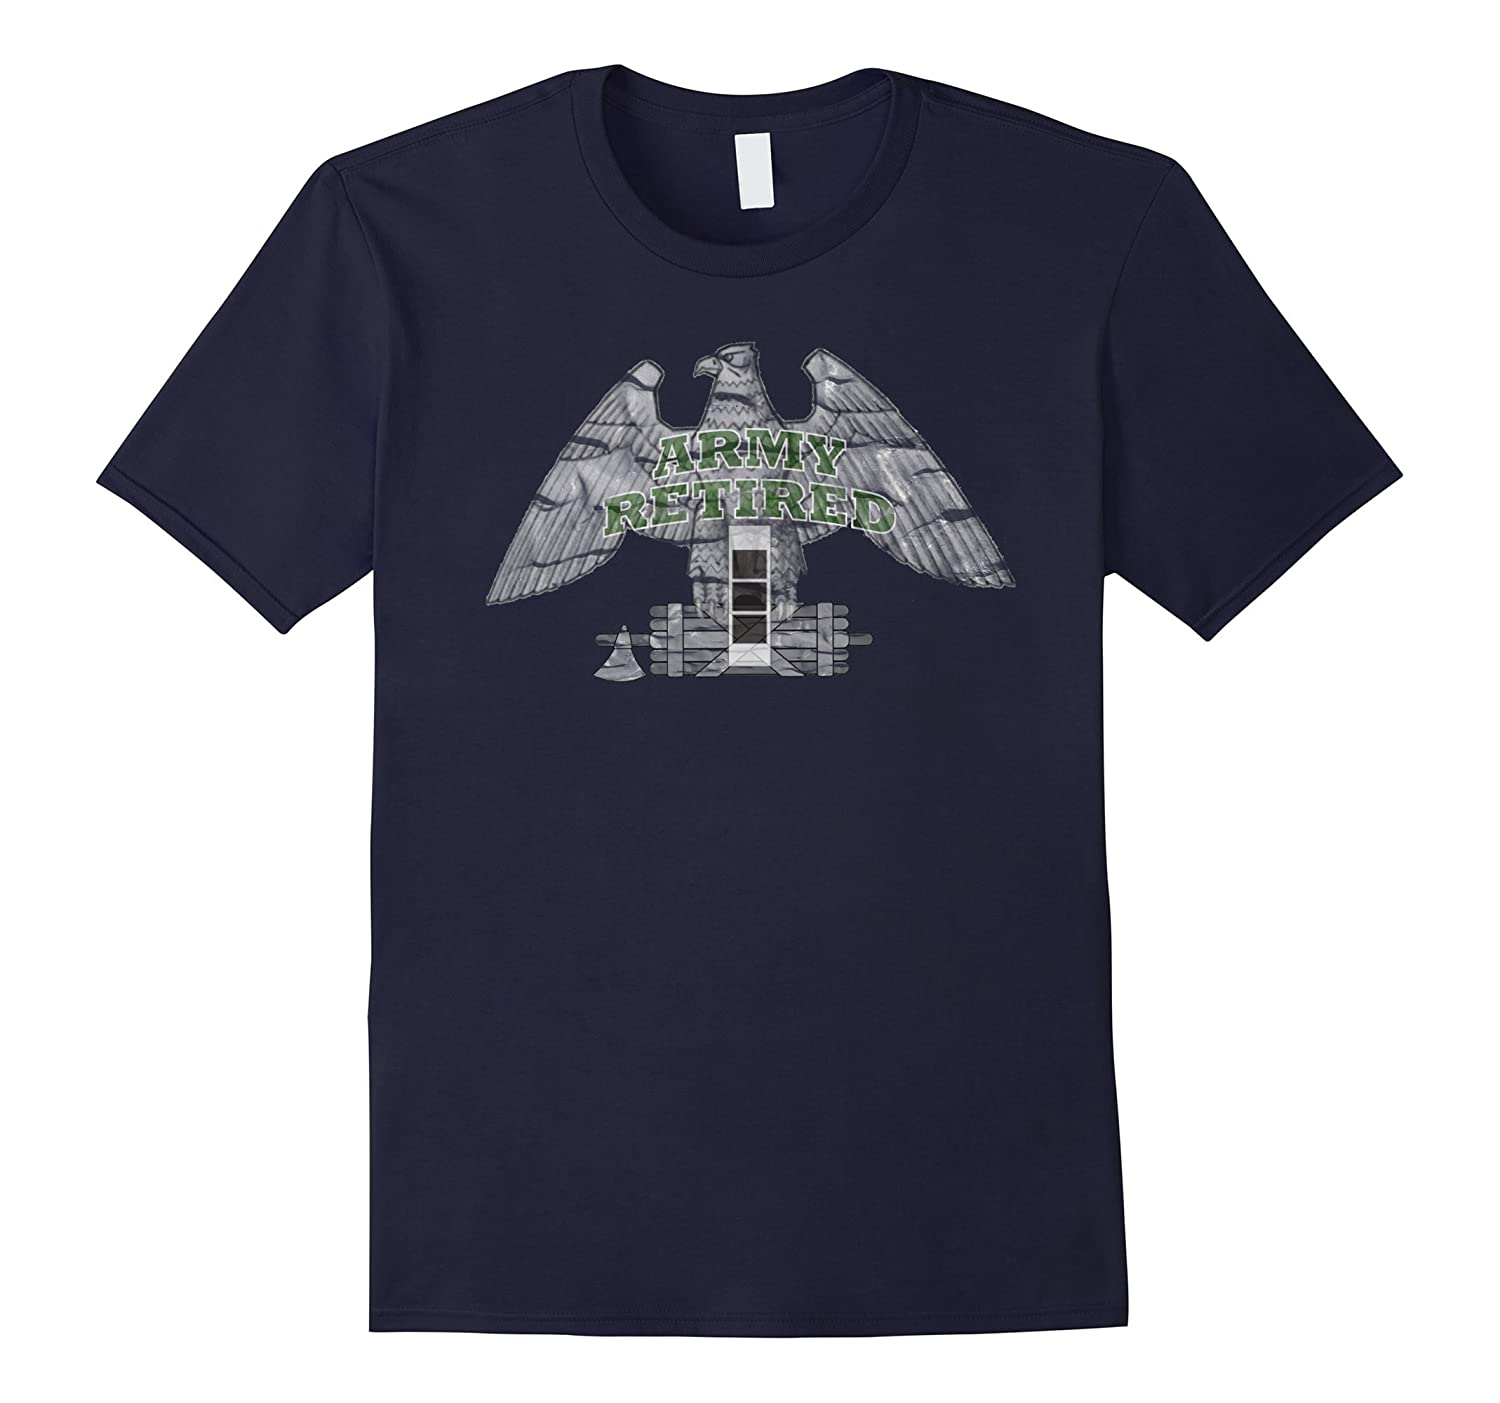 ARMY RETIRED CHIEF WARRANT OFFICER 3 DISTRESSED T-SHIRT-CD